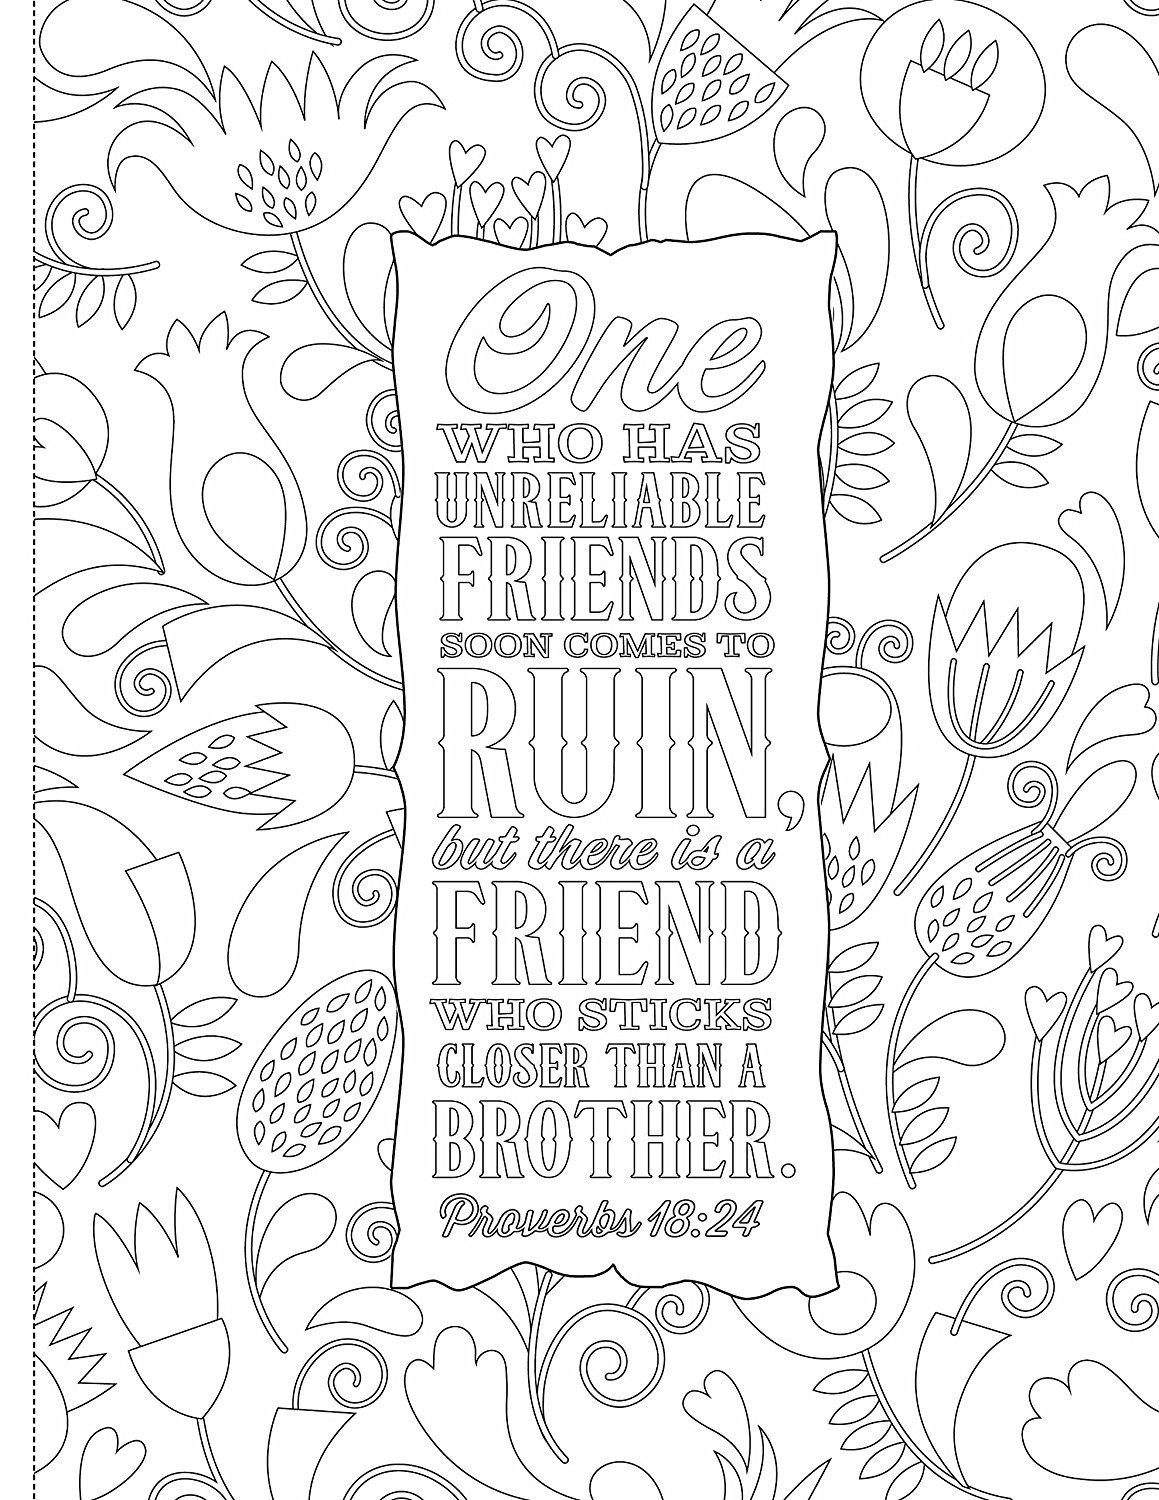 Inspiring Words Coloring Book 30 Verses From The Bible